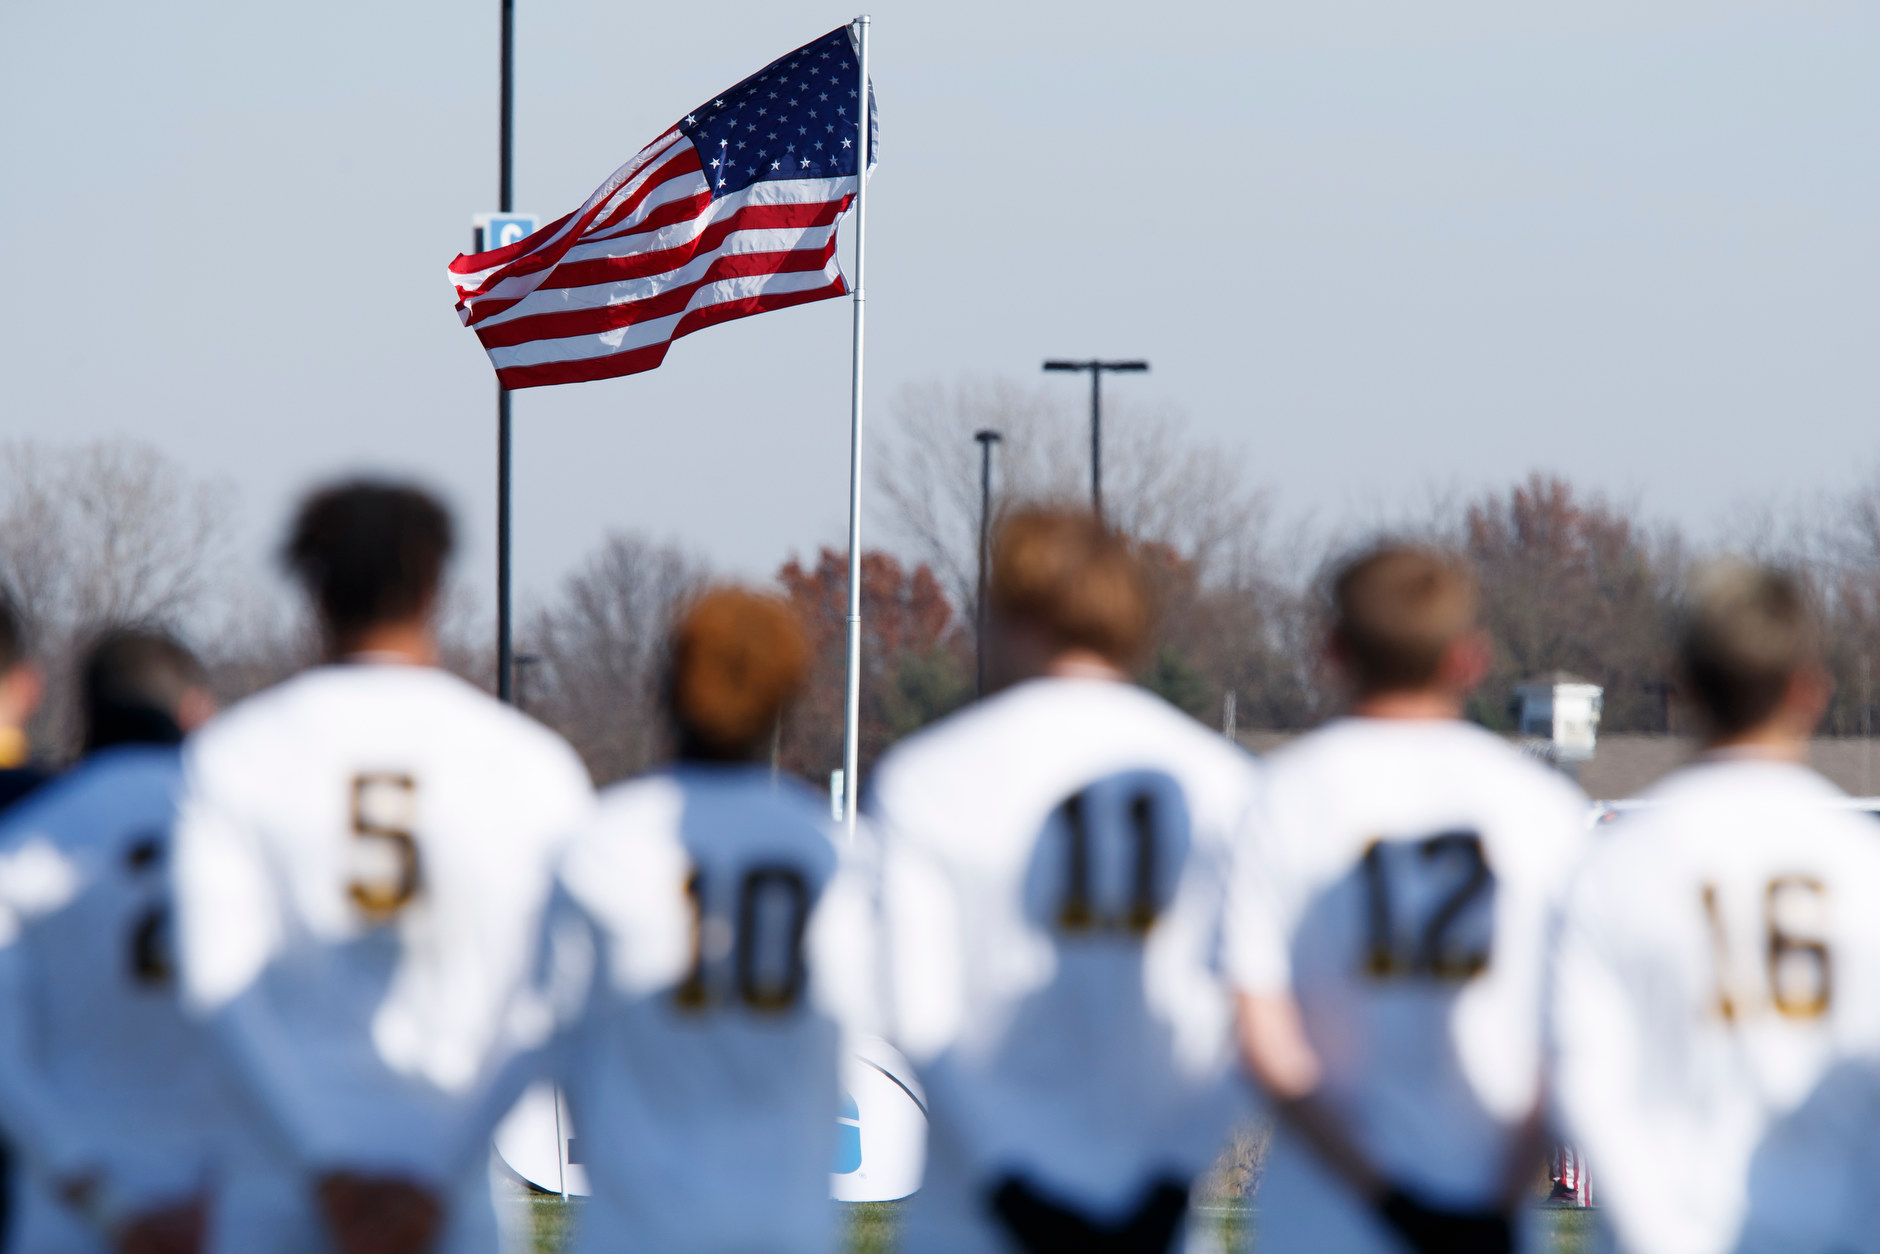 Michigan players stand for the singing of the National Anthem before the Big Ten Men's Soccer Tournament championship game against Indiana at Grand Park in Westfield, Indiana on Sunday, Nov. 11, 2018. (Photo by James Brosher)